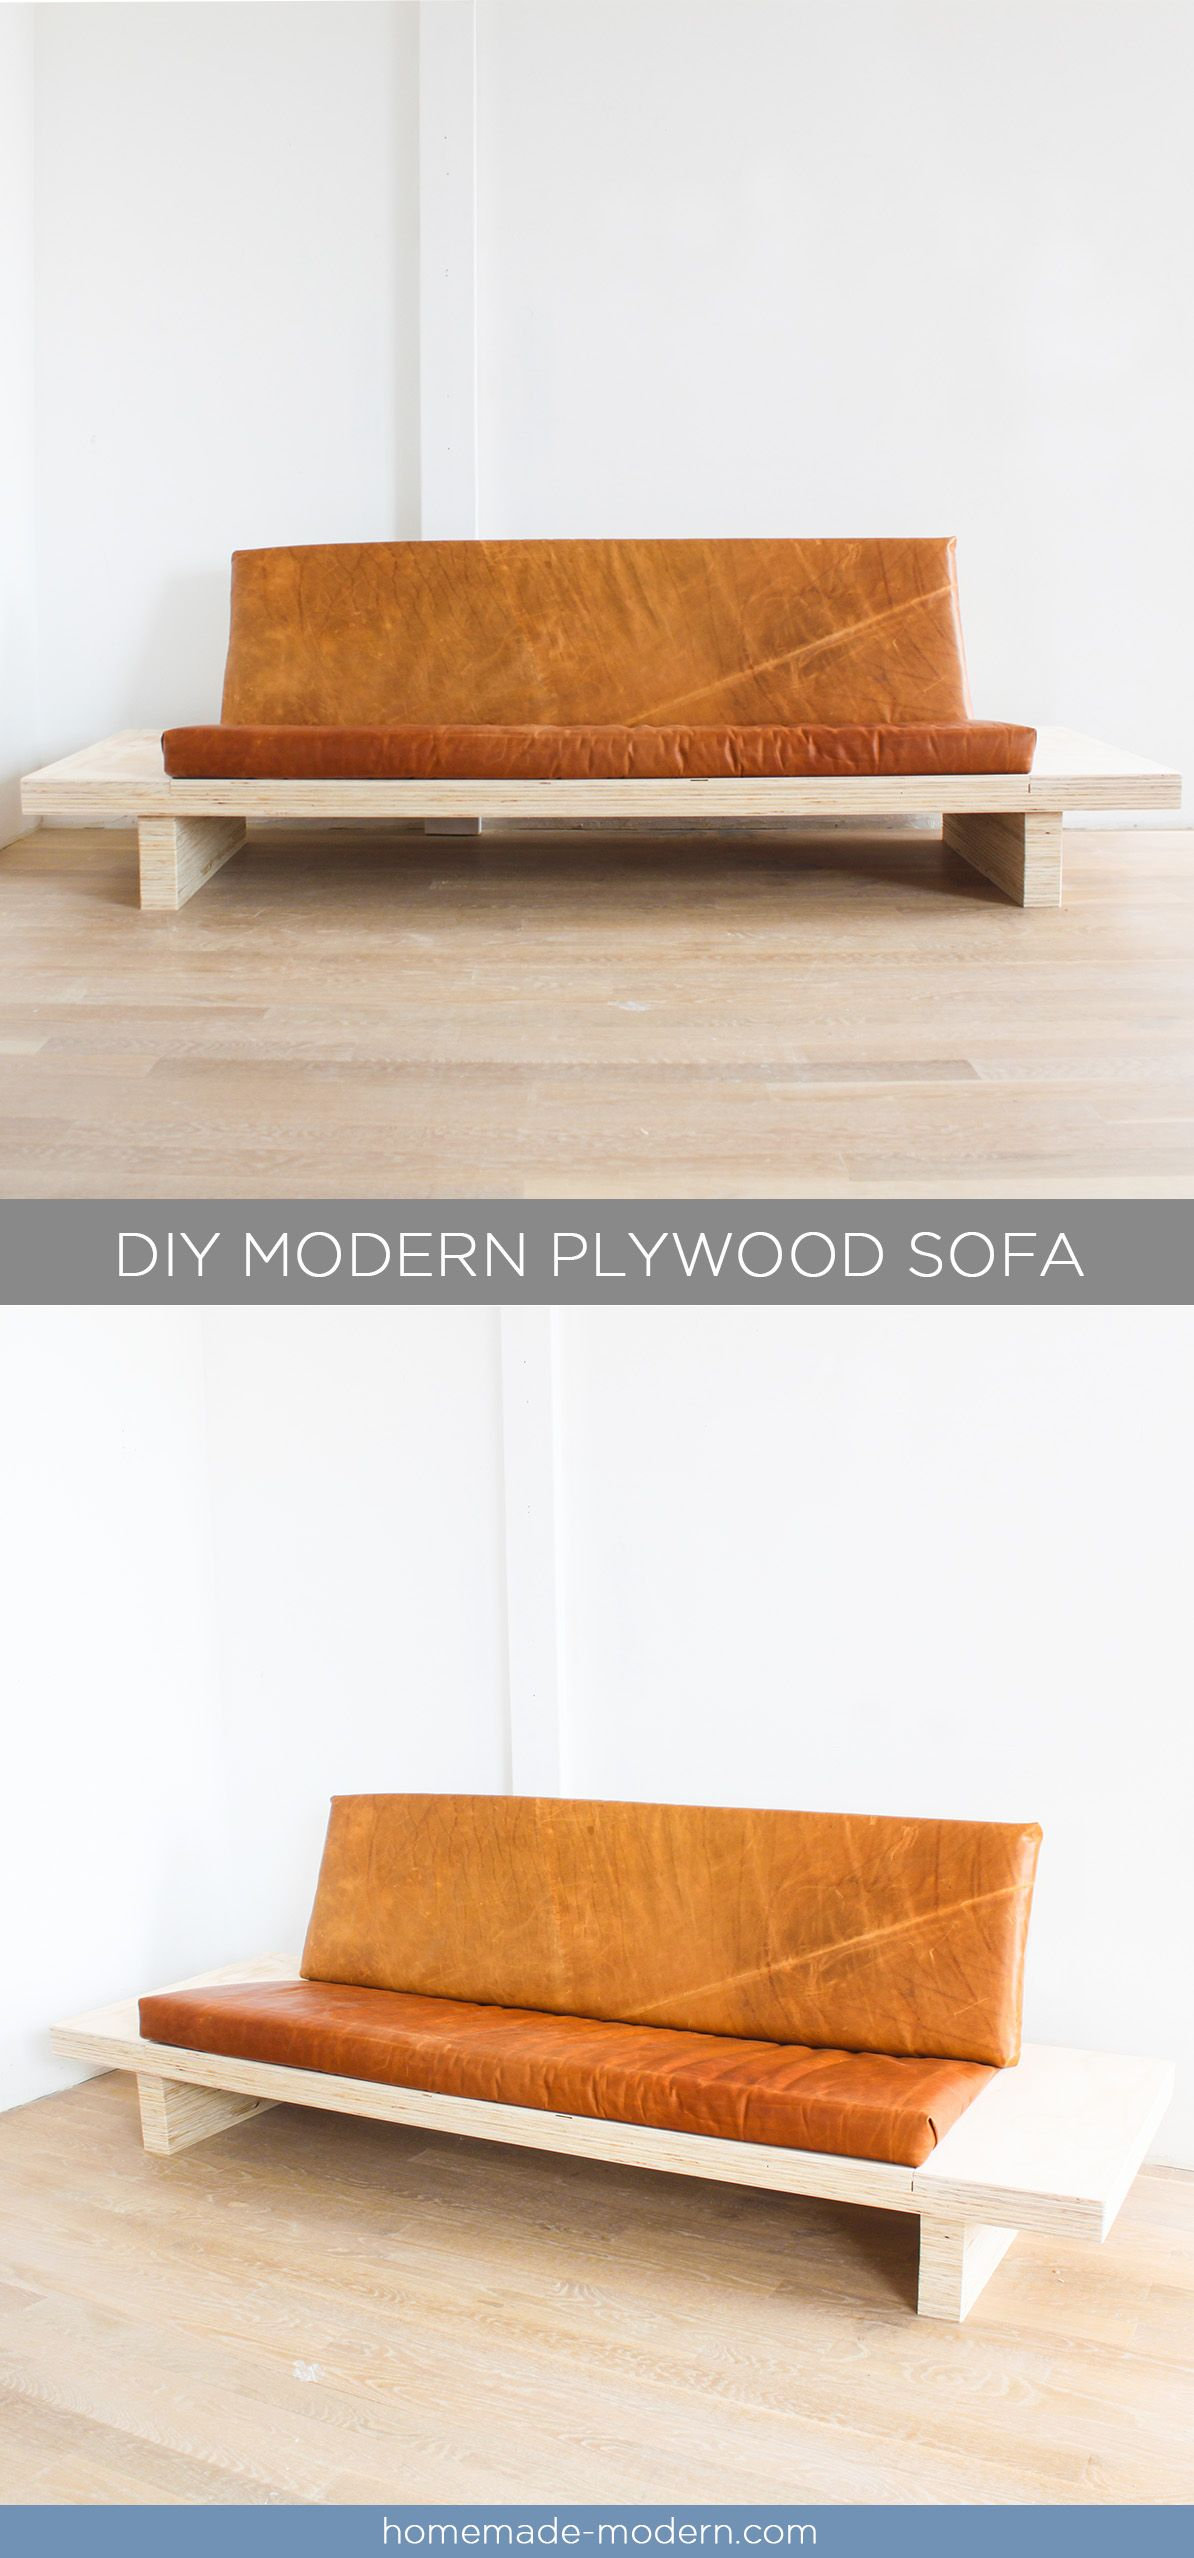 This Diy Modern Plywood Sofa Is Made Out Of 2 1 2 Sheets Of Plywood From Home Depot Full Instructions C Diy Modern Furniture Homemade Modern Plywood Table